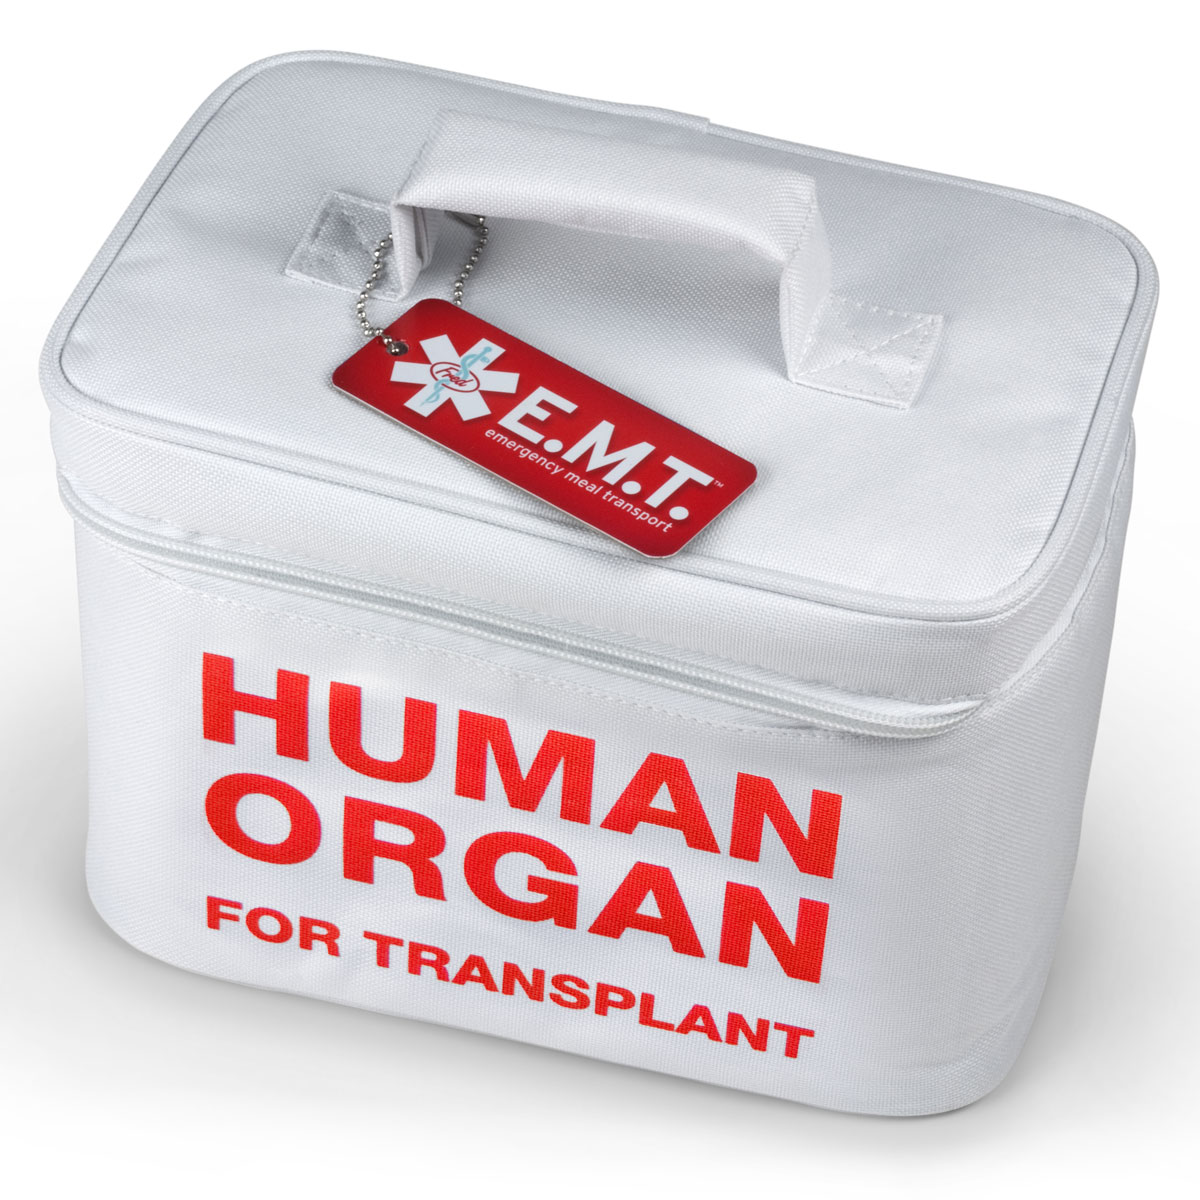 Why not... buy and sell Human organs?